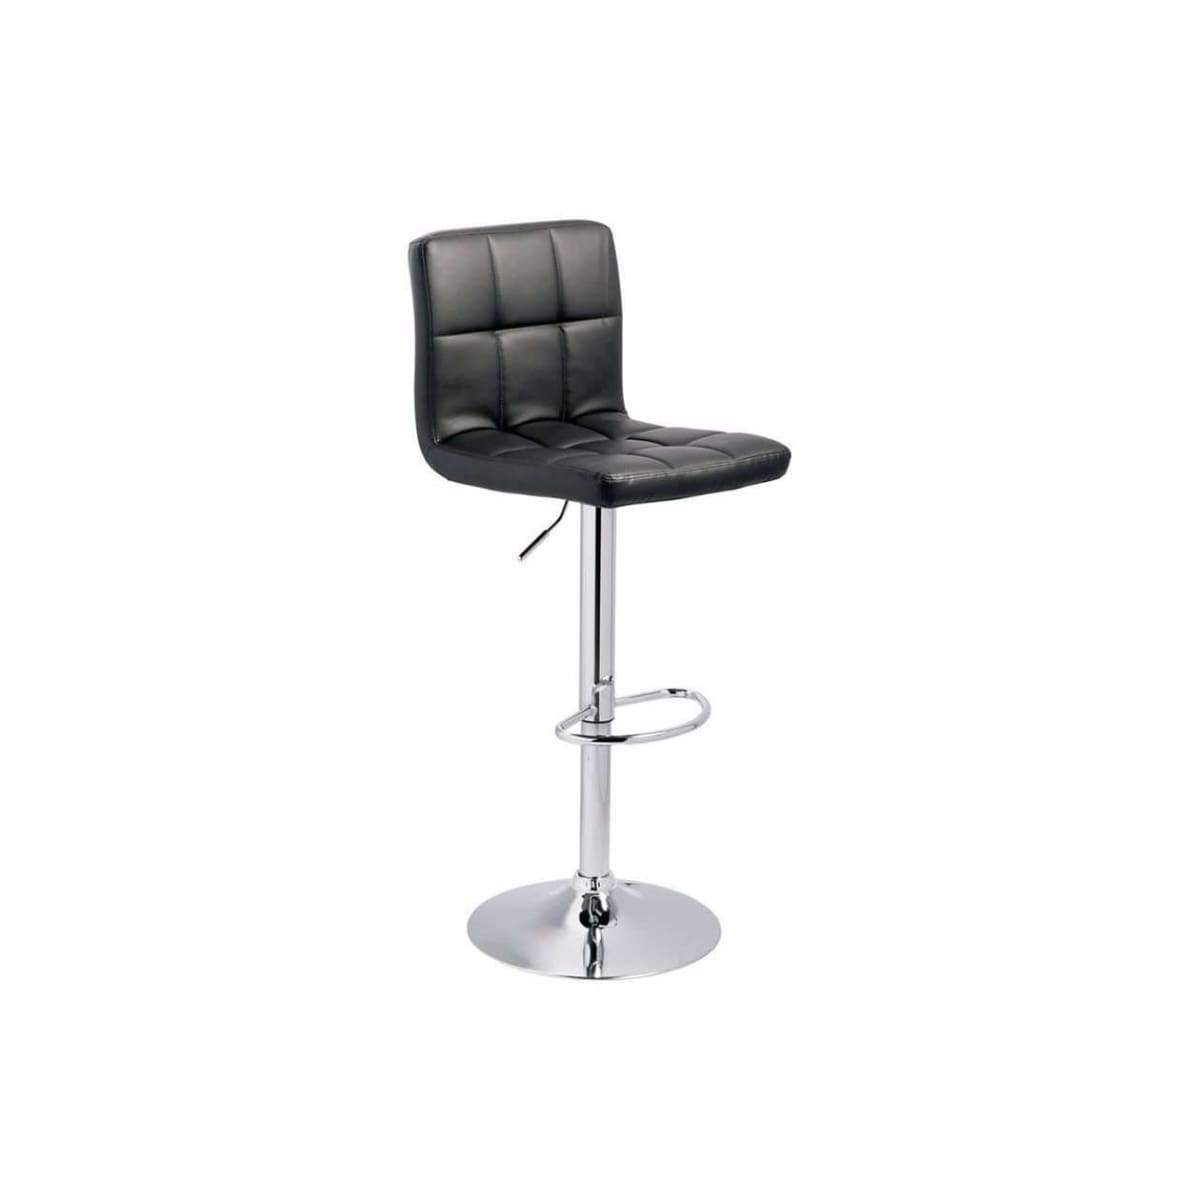 Bellatier Black Adjustable Height Bar Stool - BAR STOOL